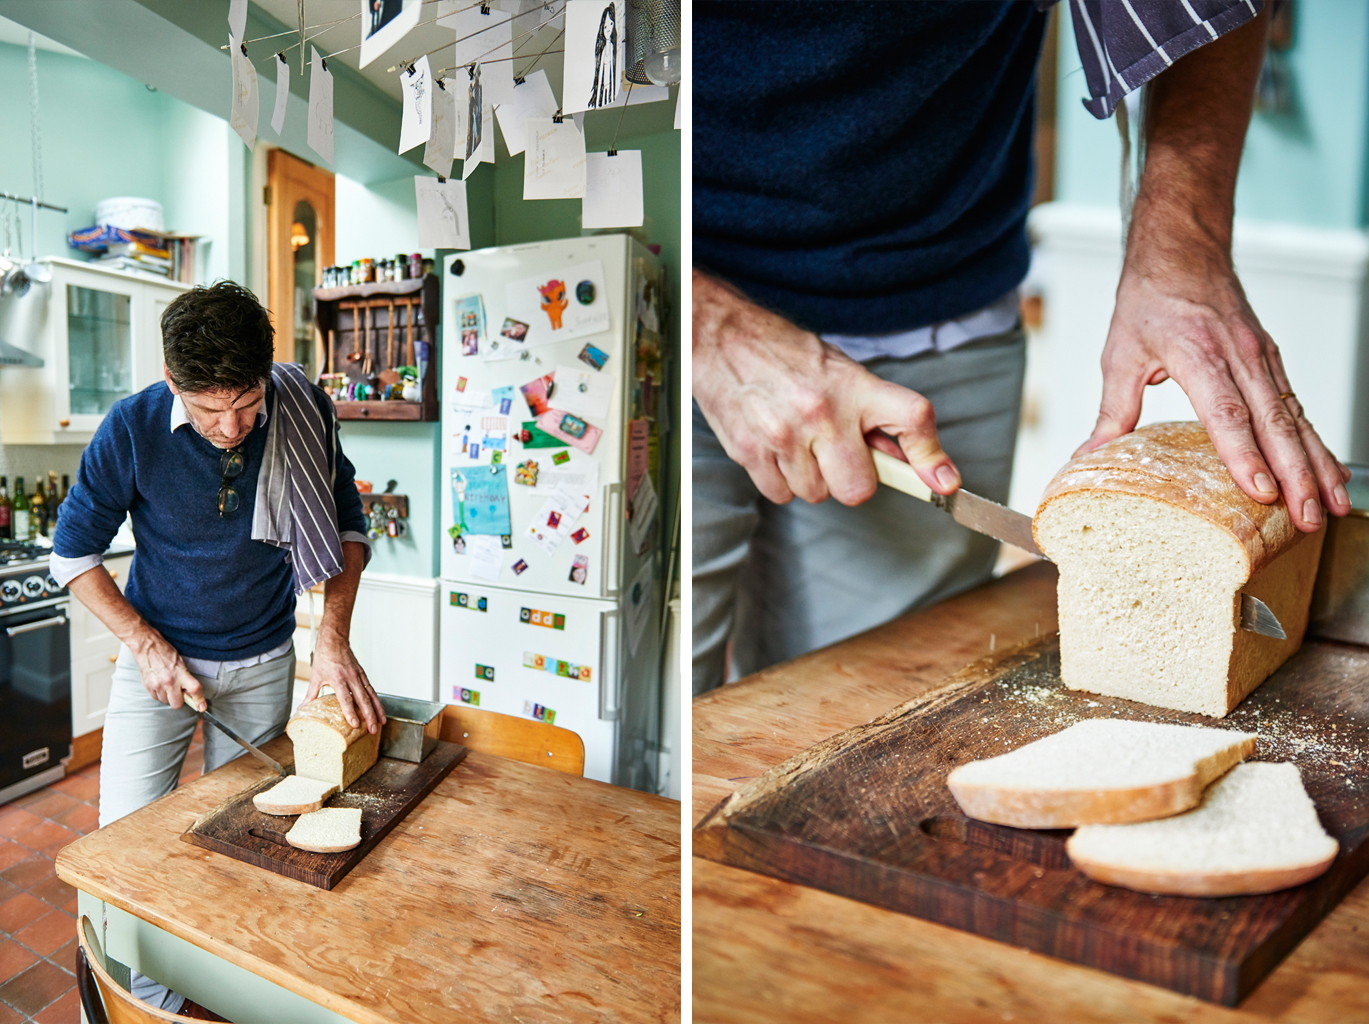 food-photographer-london-editorial-advertising-photography-recipe-russell-norman-esquire-kitchen-baking-bread-cookbook-book-cook-travel-lifestyle-kitchen-photography-slice.jpg